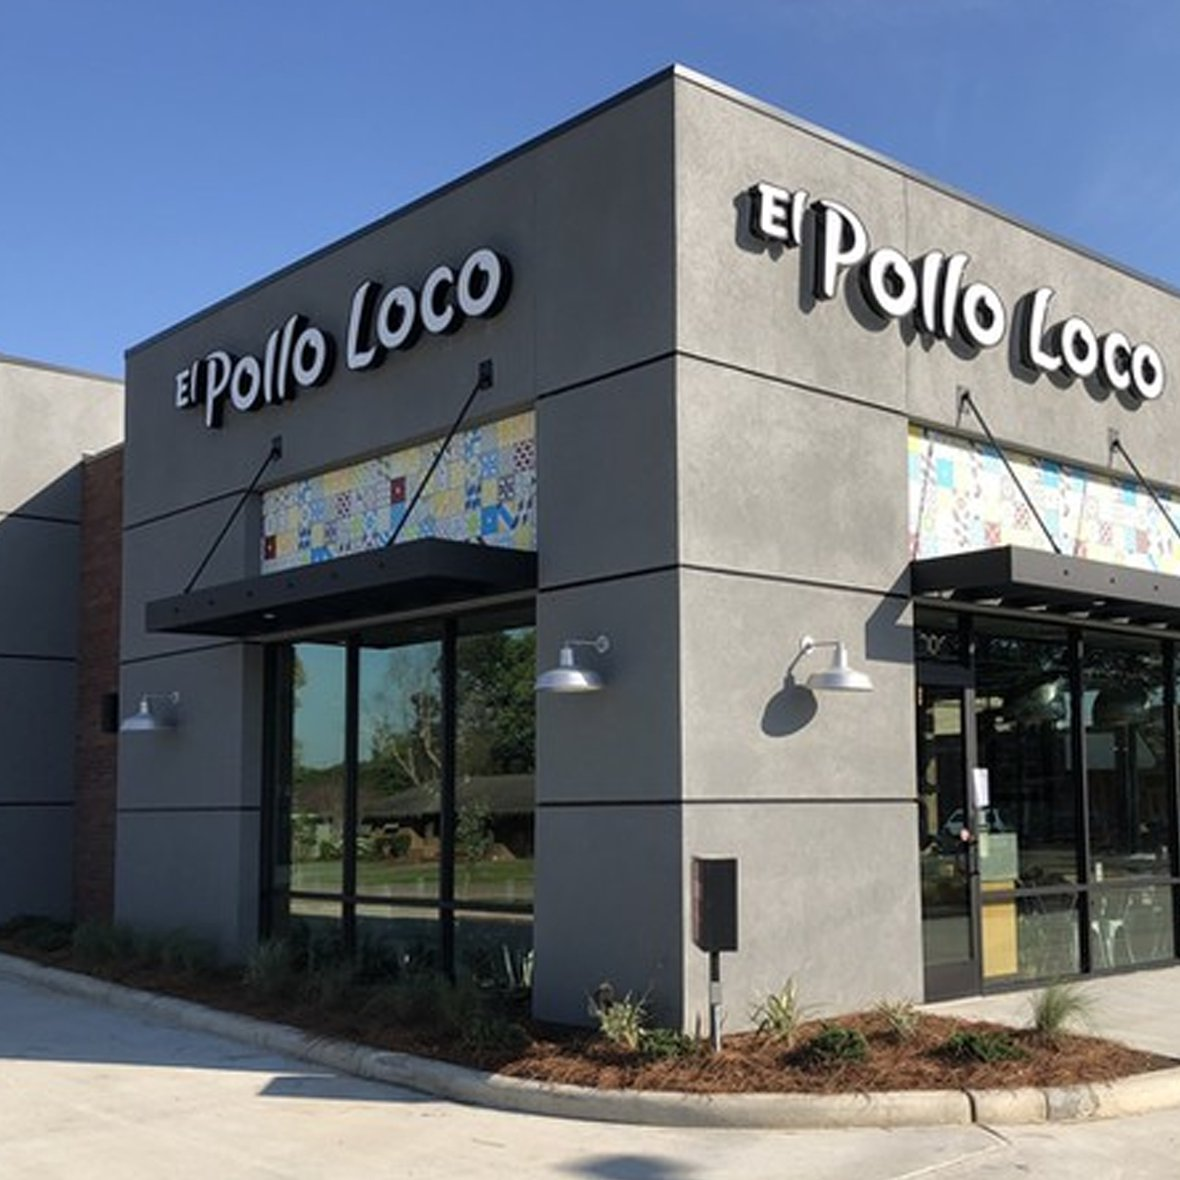 Exterior view of El Pollo Loco restaurant